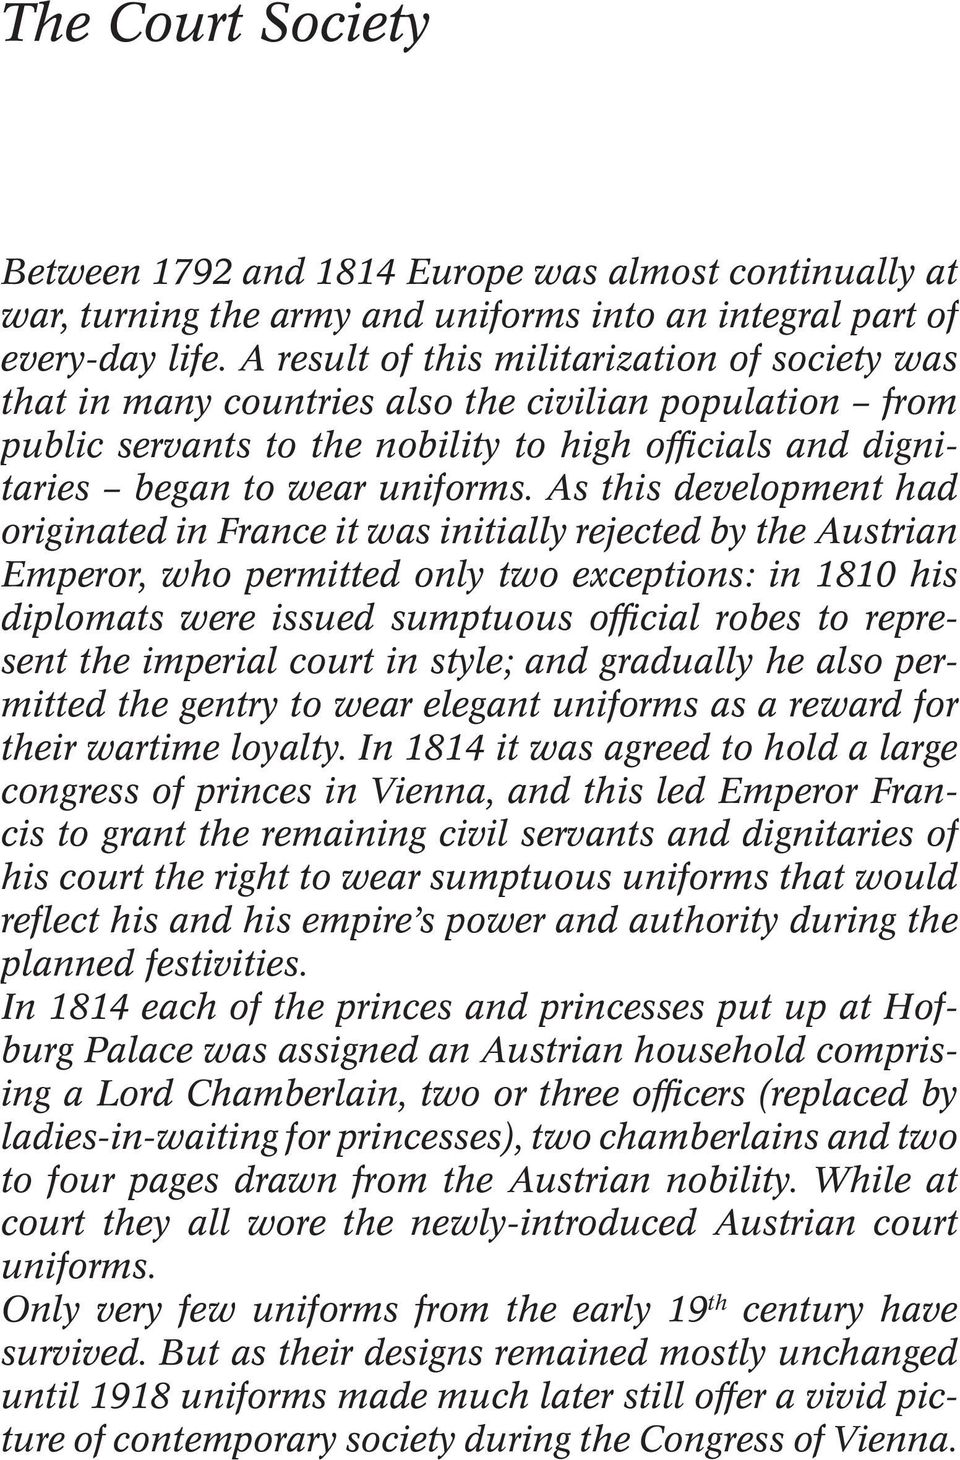 As this development had originated in France it was initially rejected by the Austrian Emperor, who permitted only two exceptions: in 1810 his diplomats were issued sumptuous official robes to